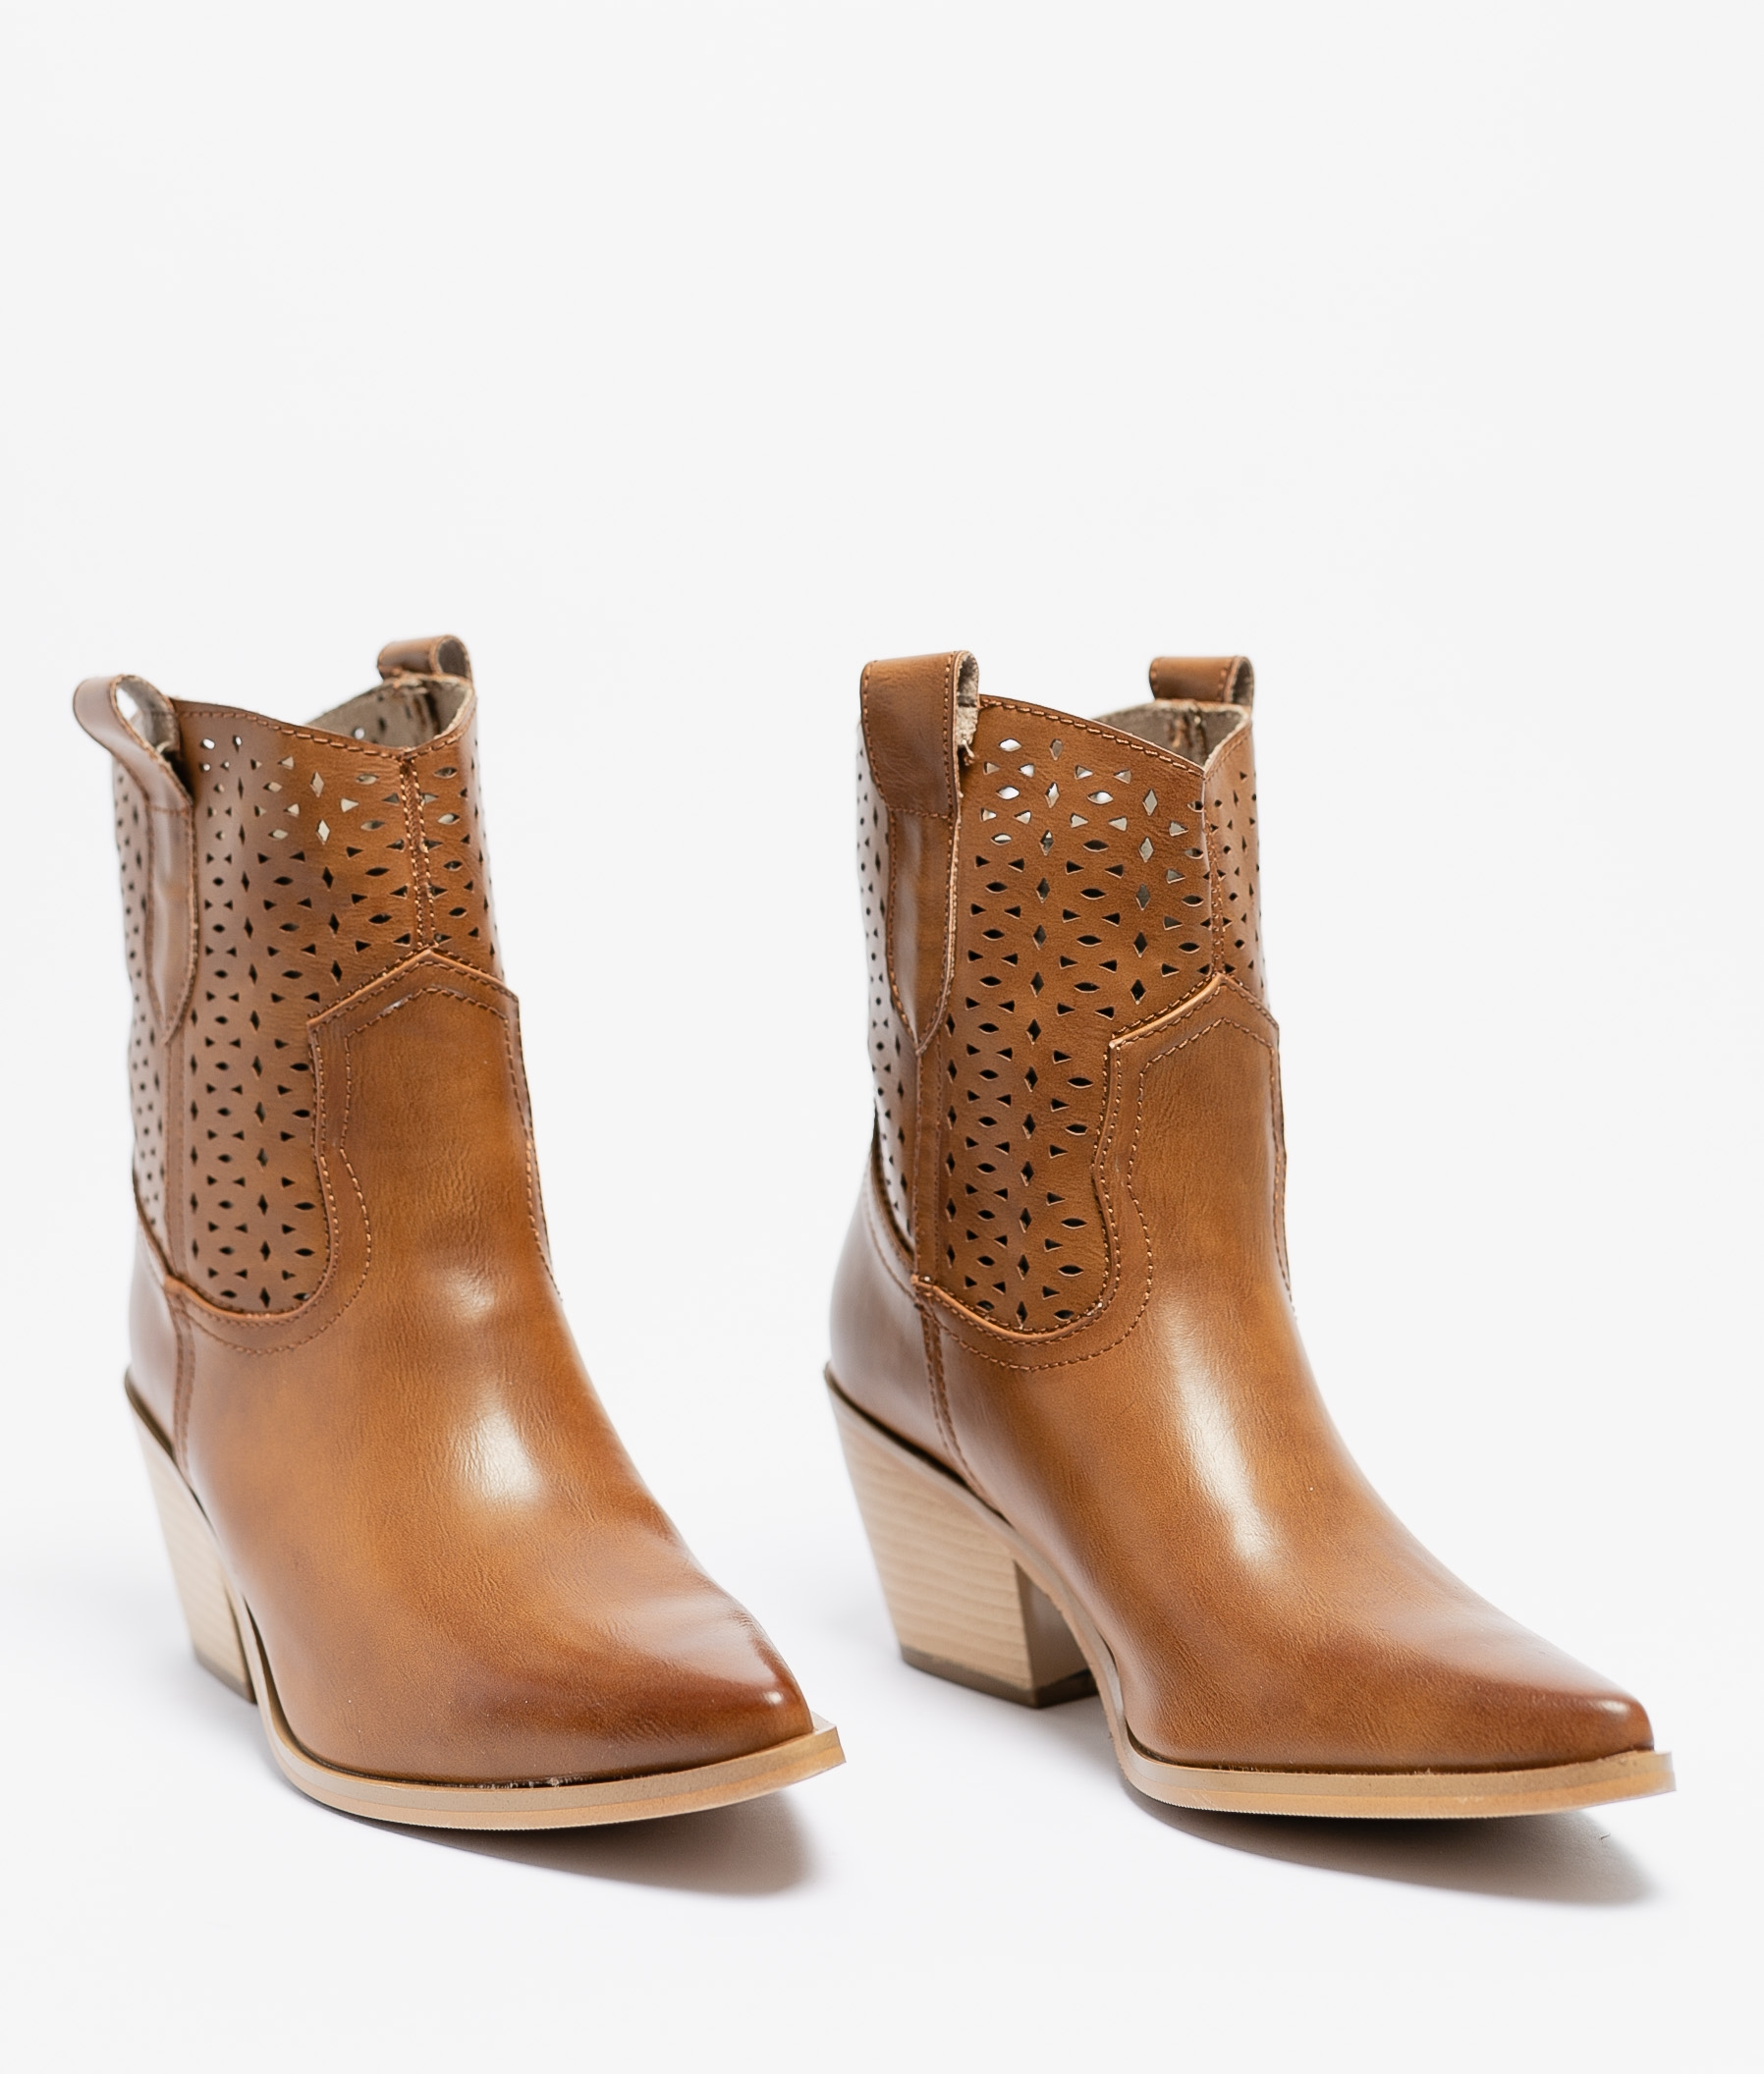 Nerila Low Boot - Camel